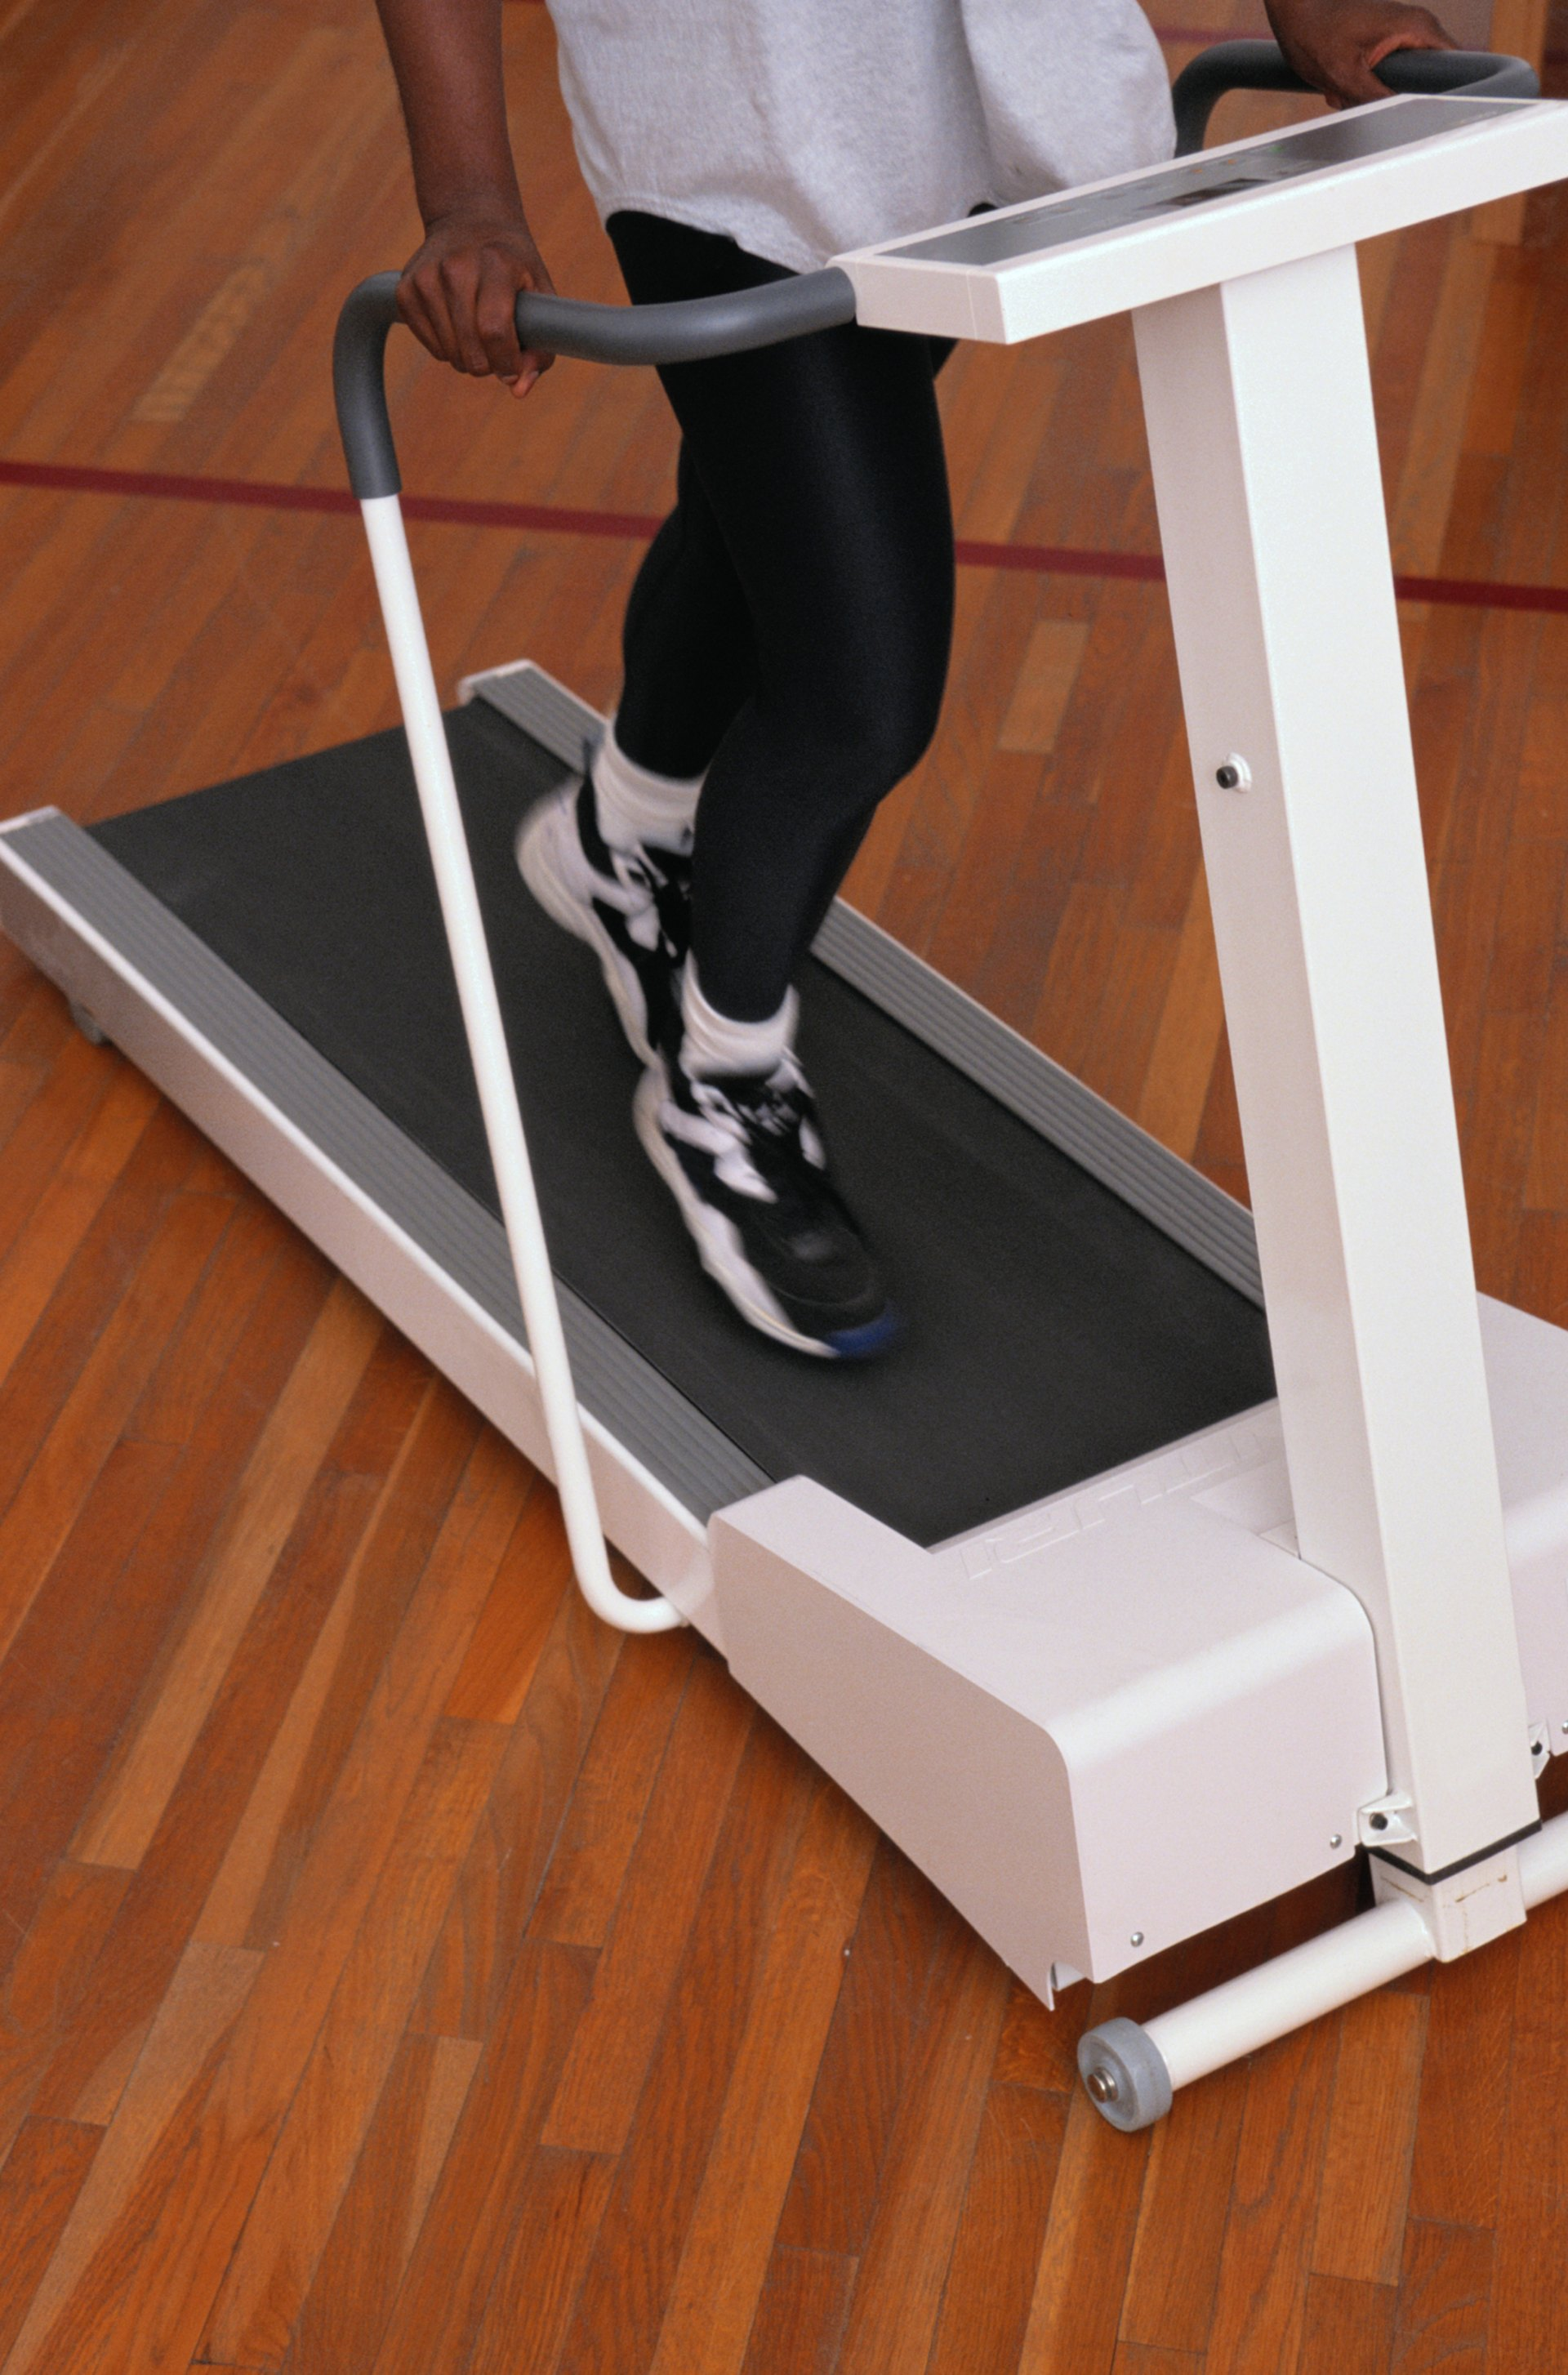 How To Troubleshoot A True 500 Treadmill Repair Short Circuit